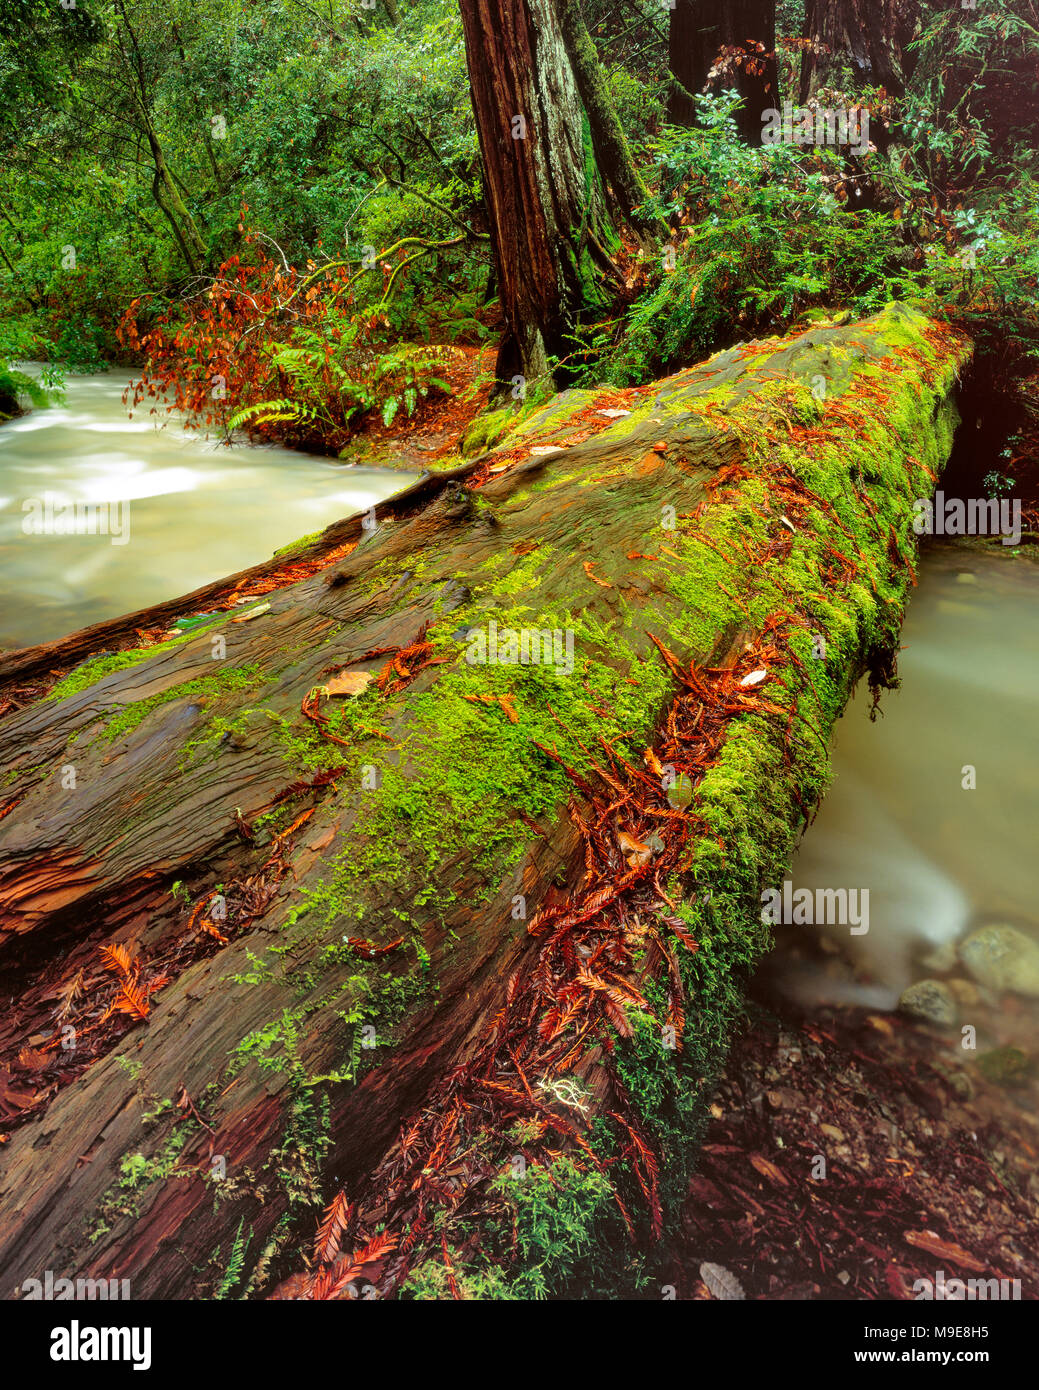 Downed Redwood, Sequoia Sempervirens, Muir Woods National Monument, Marin County, California - Stock Image